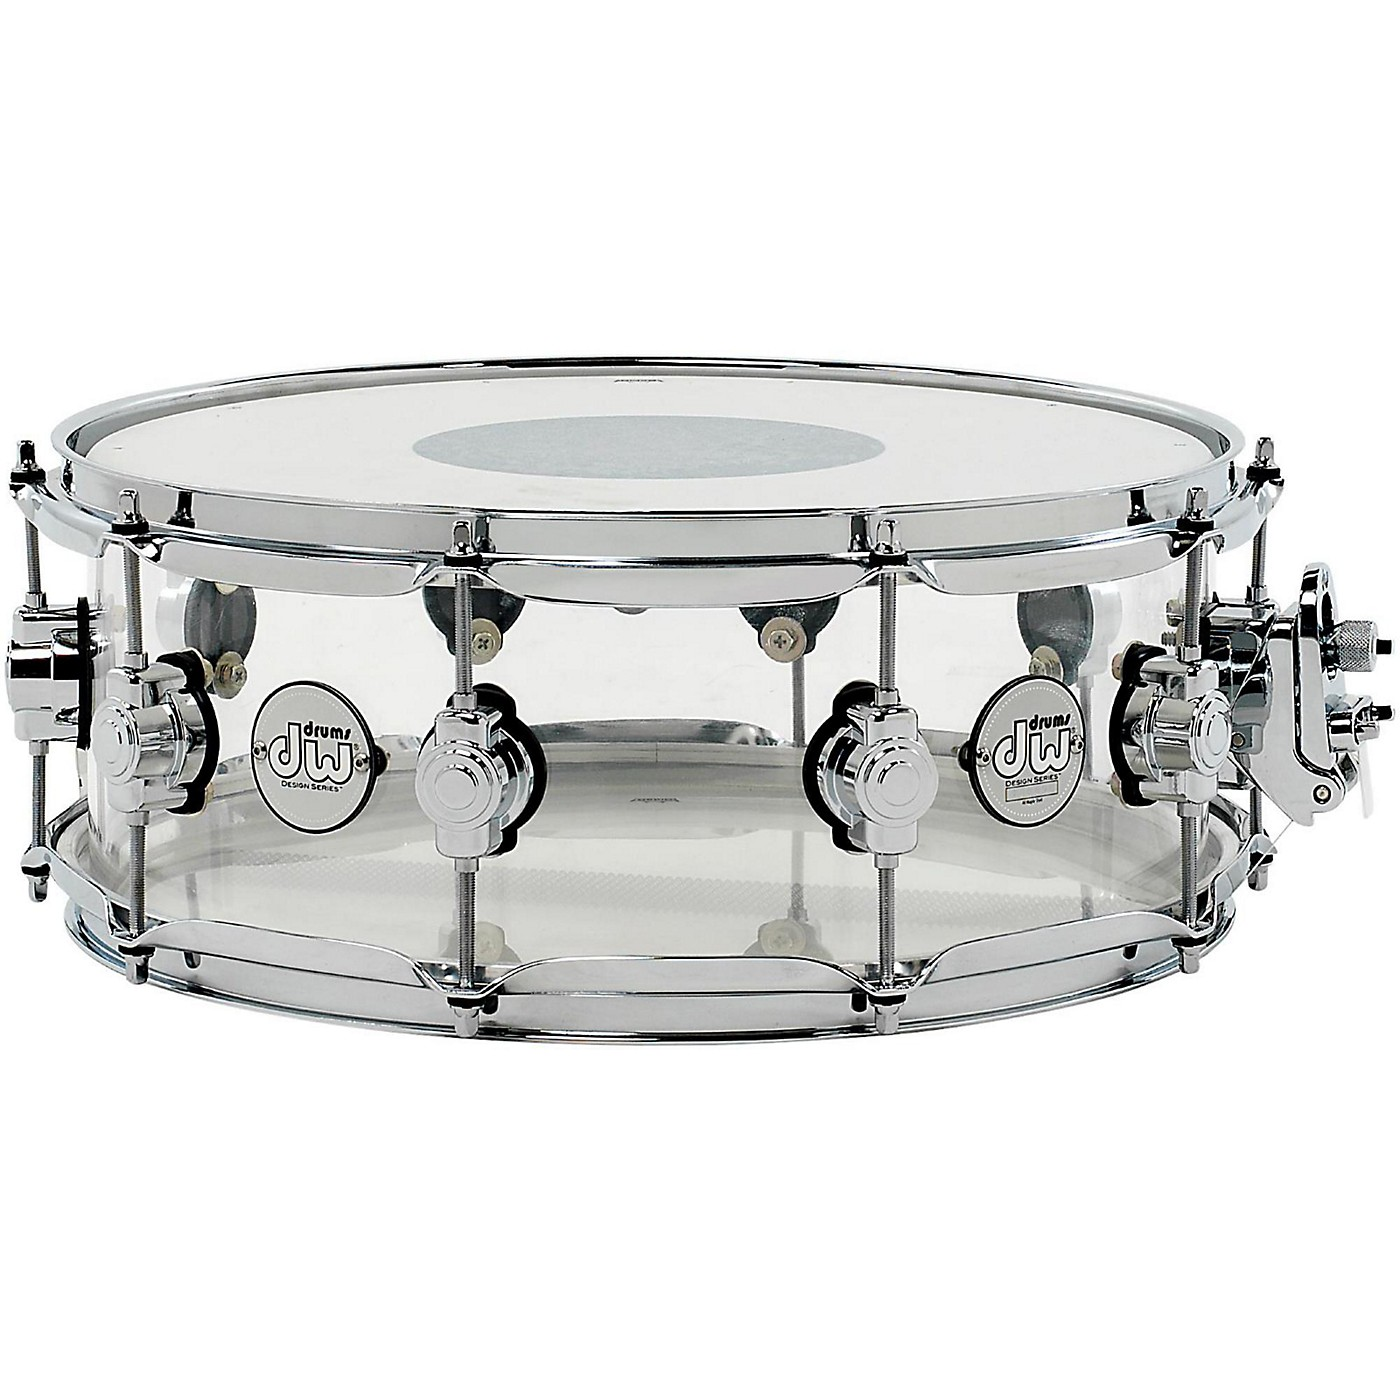 DW Design Series Acrylic Snare Drum with Chrome Hardware thumbnail